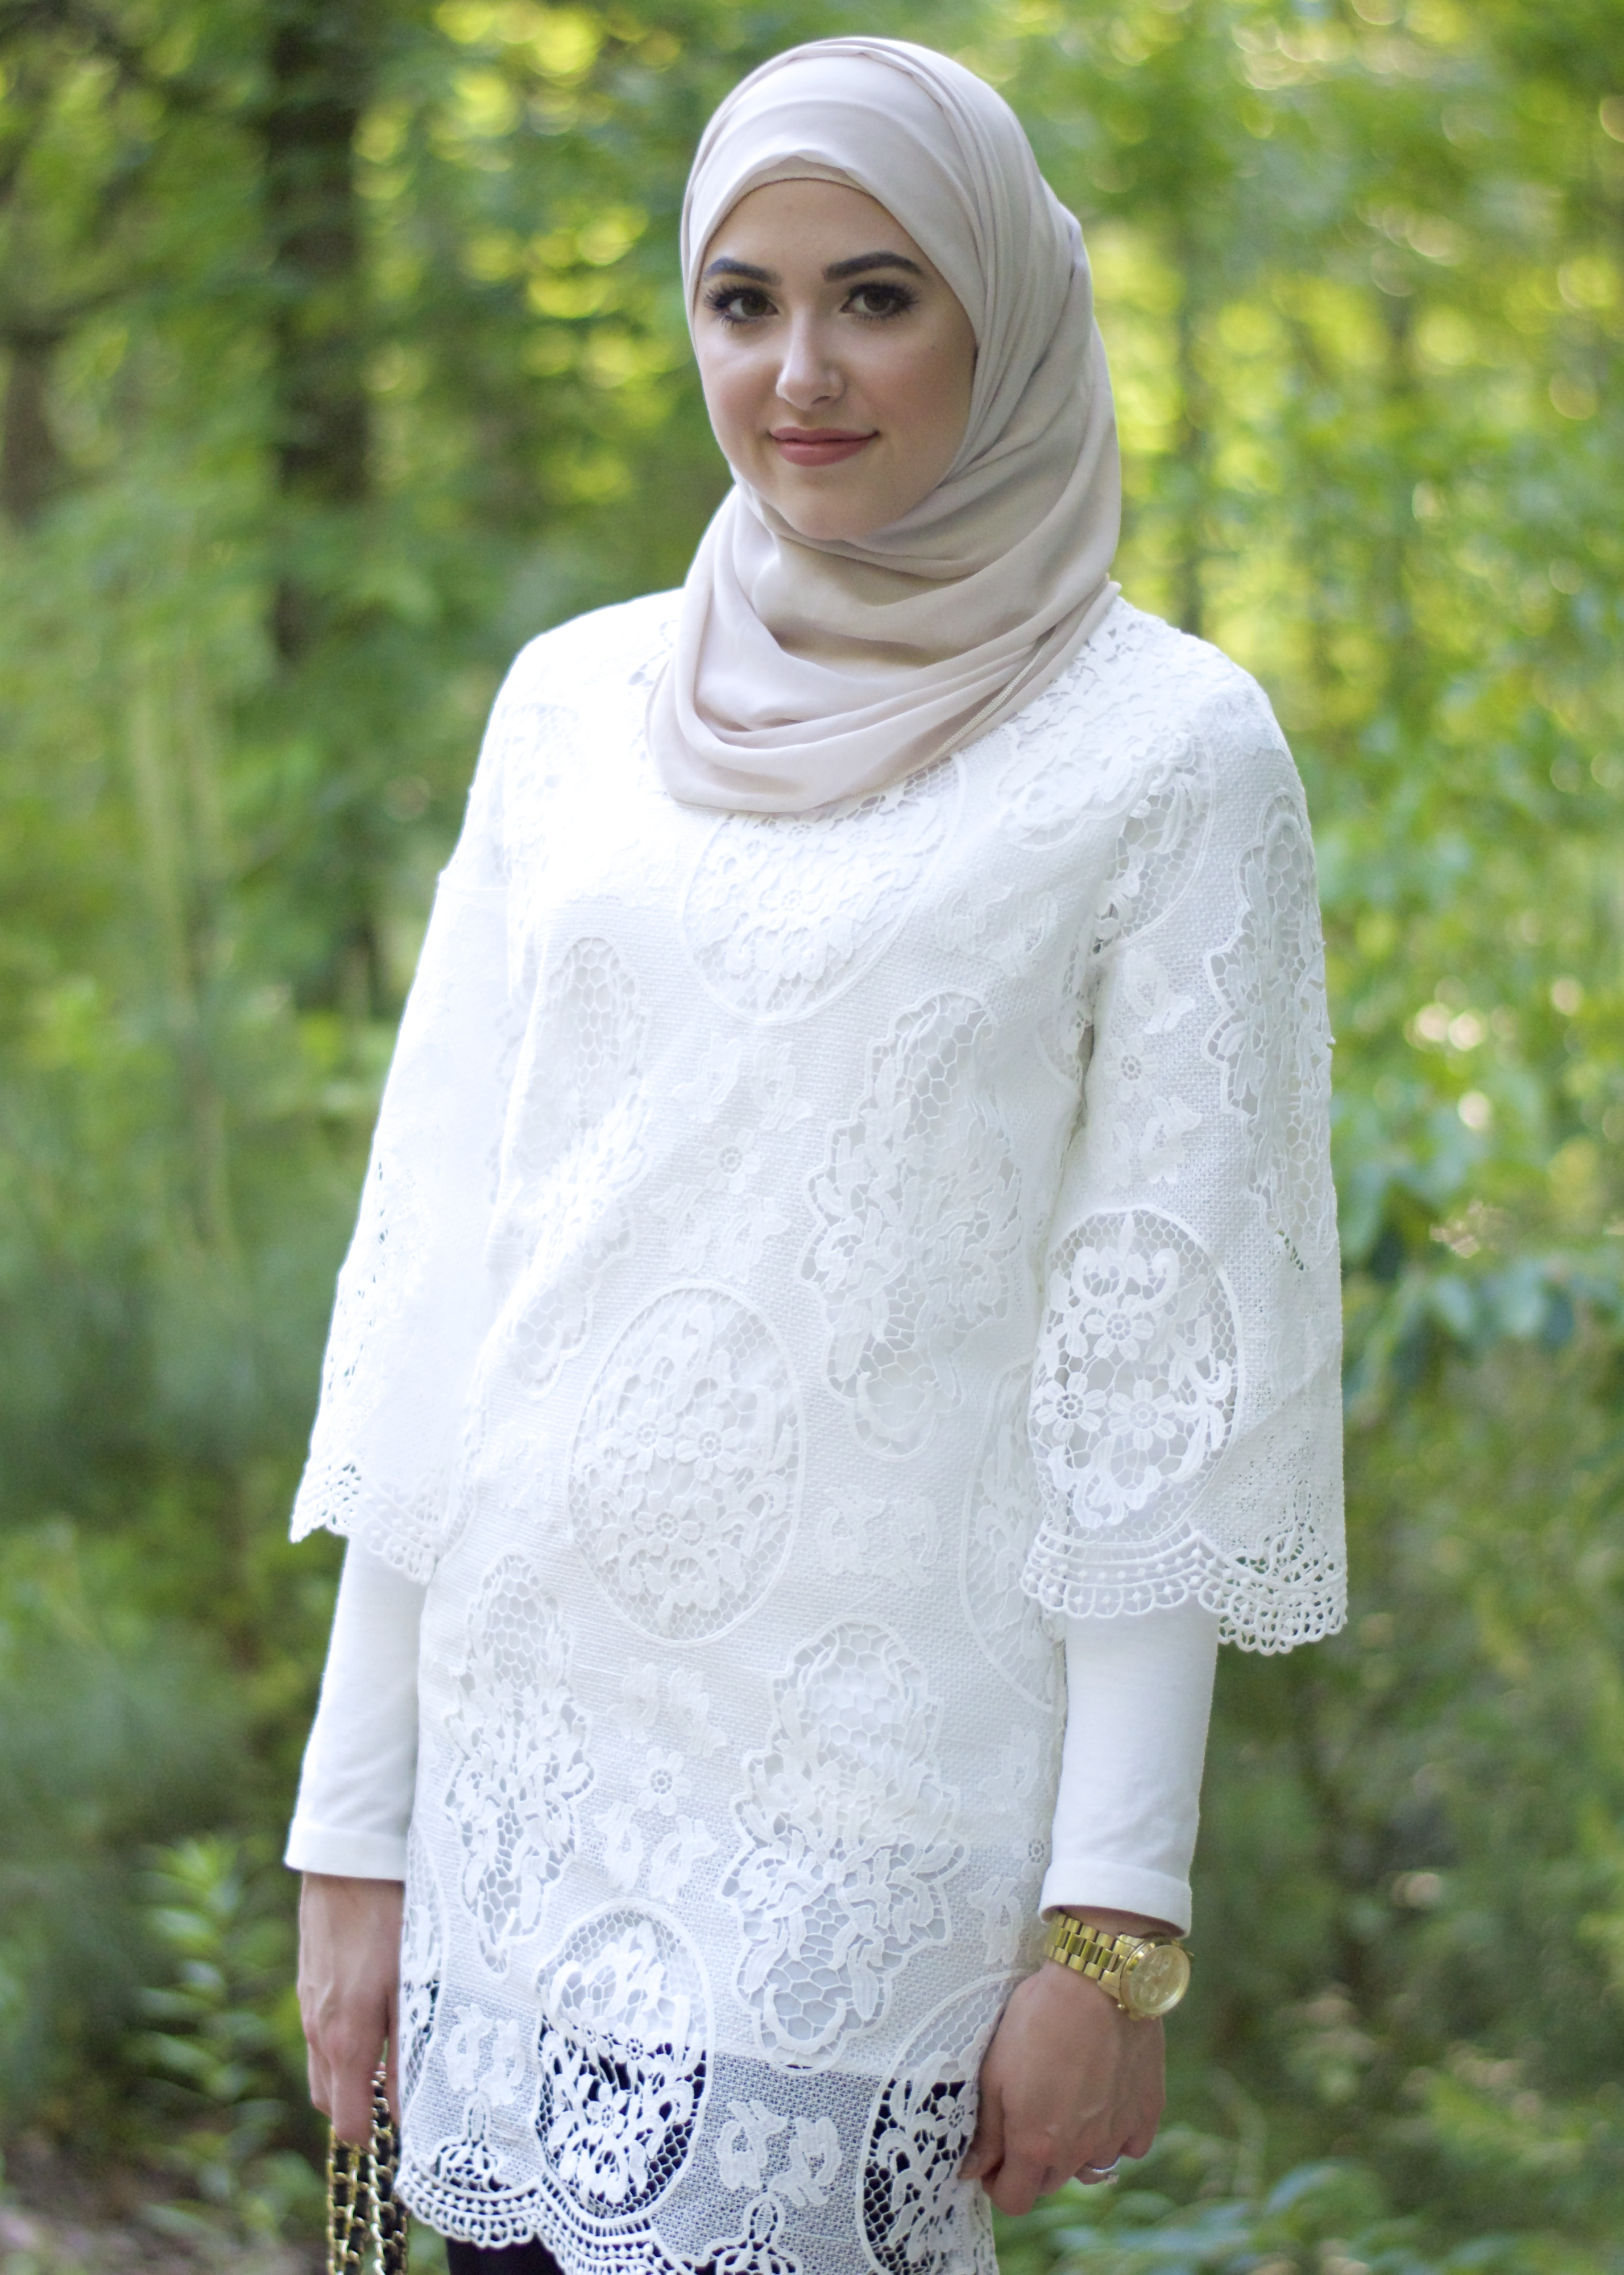 7 Tips for Choosing your Hijabi Graduation Outfit – With Love, Leena.